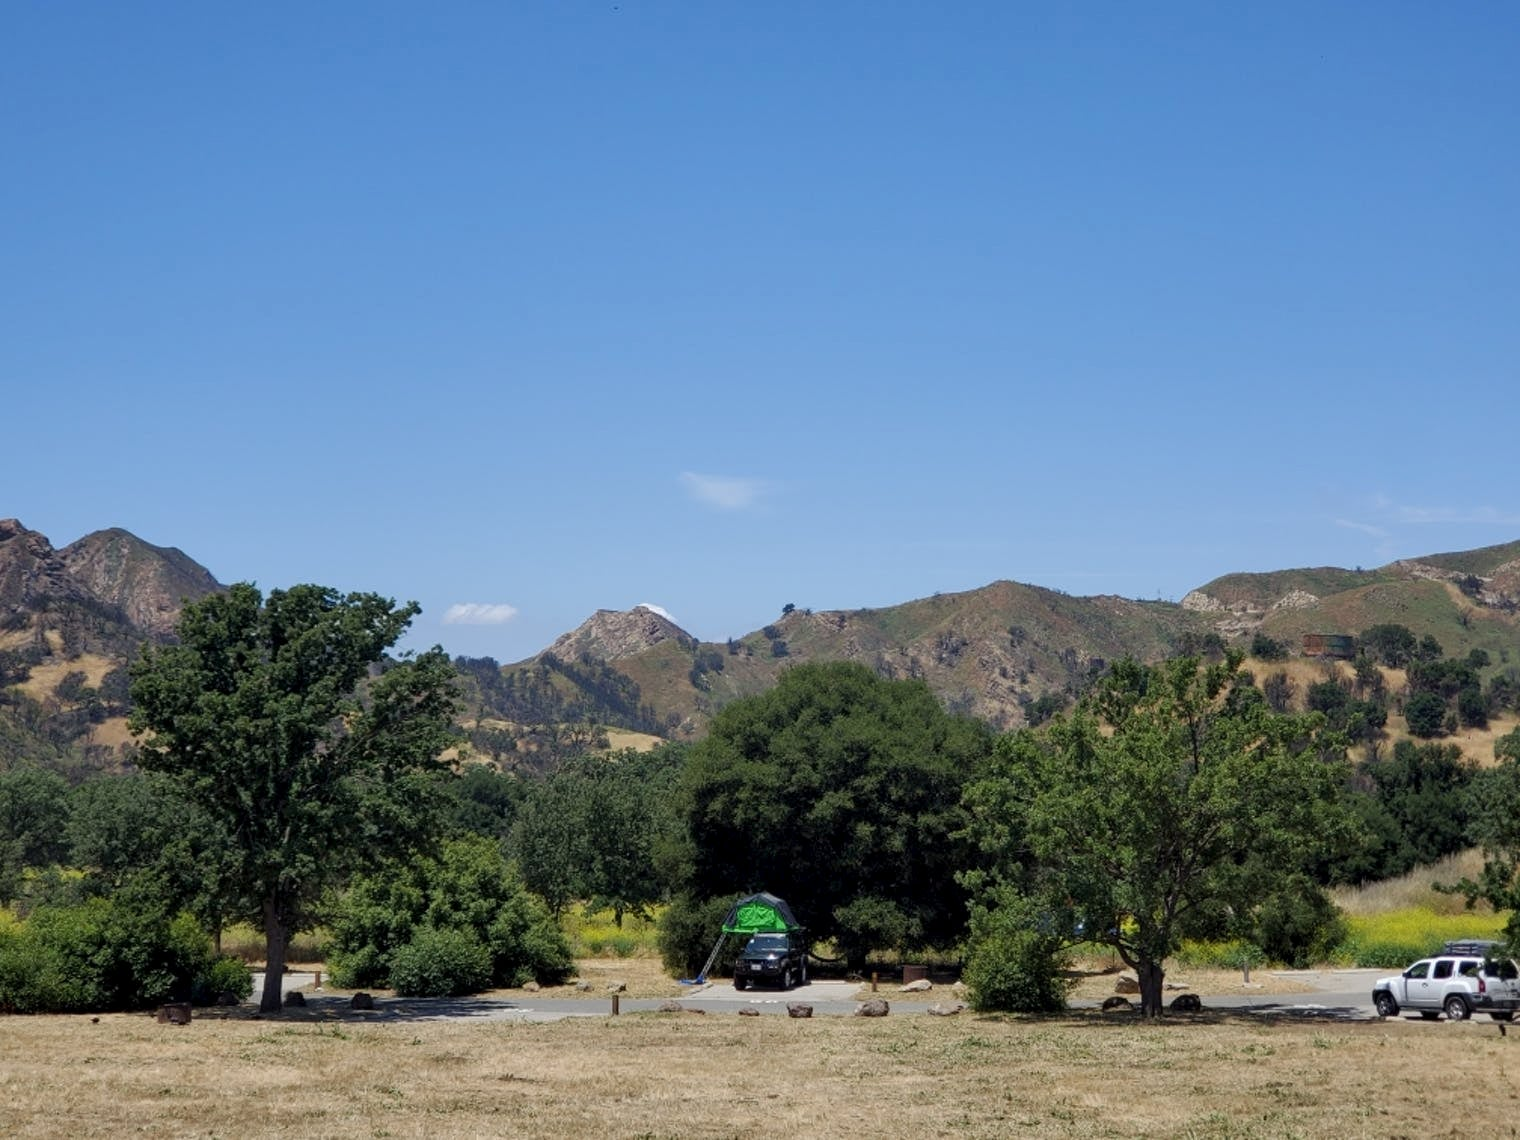 cars parked inna field with a pop up tent on one of them with trees and mountains in the background.